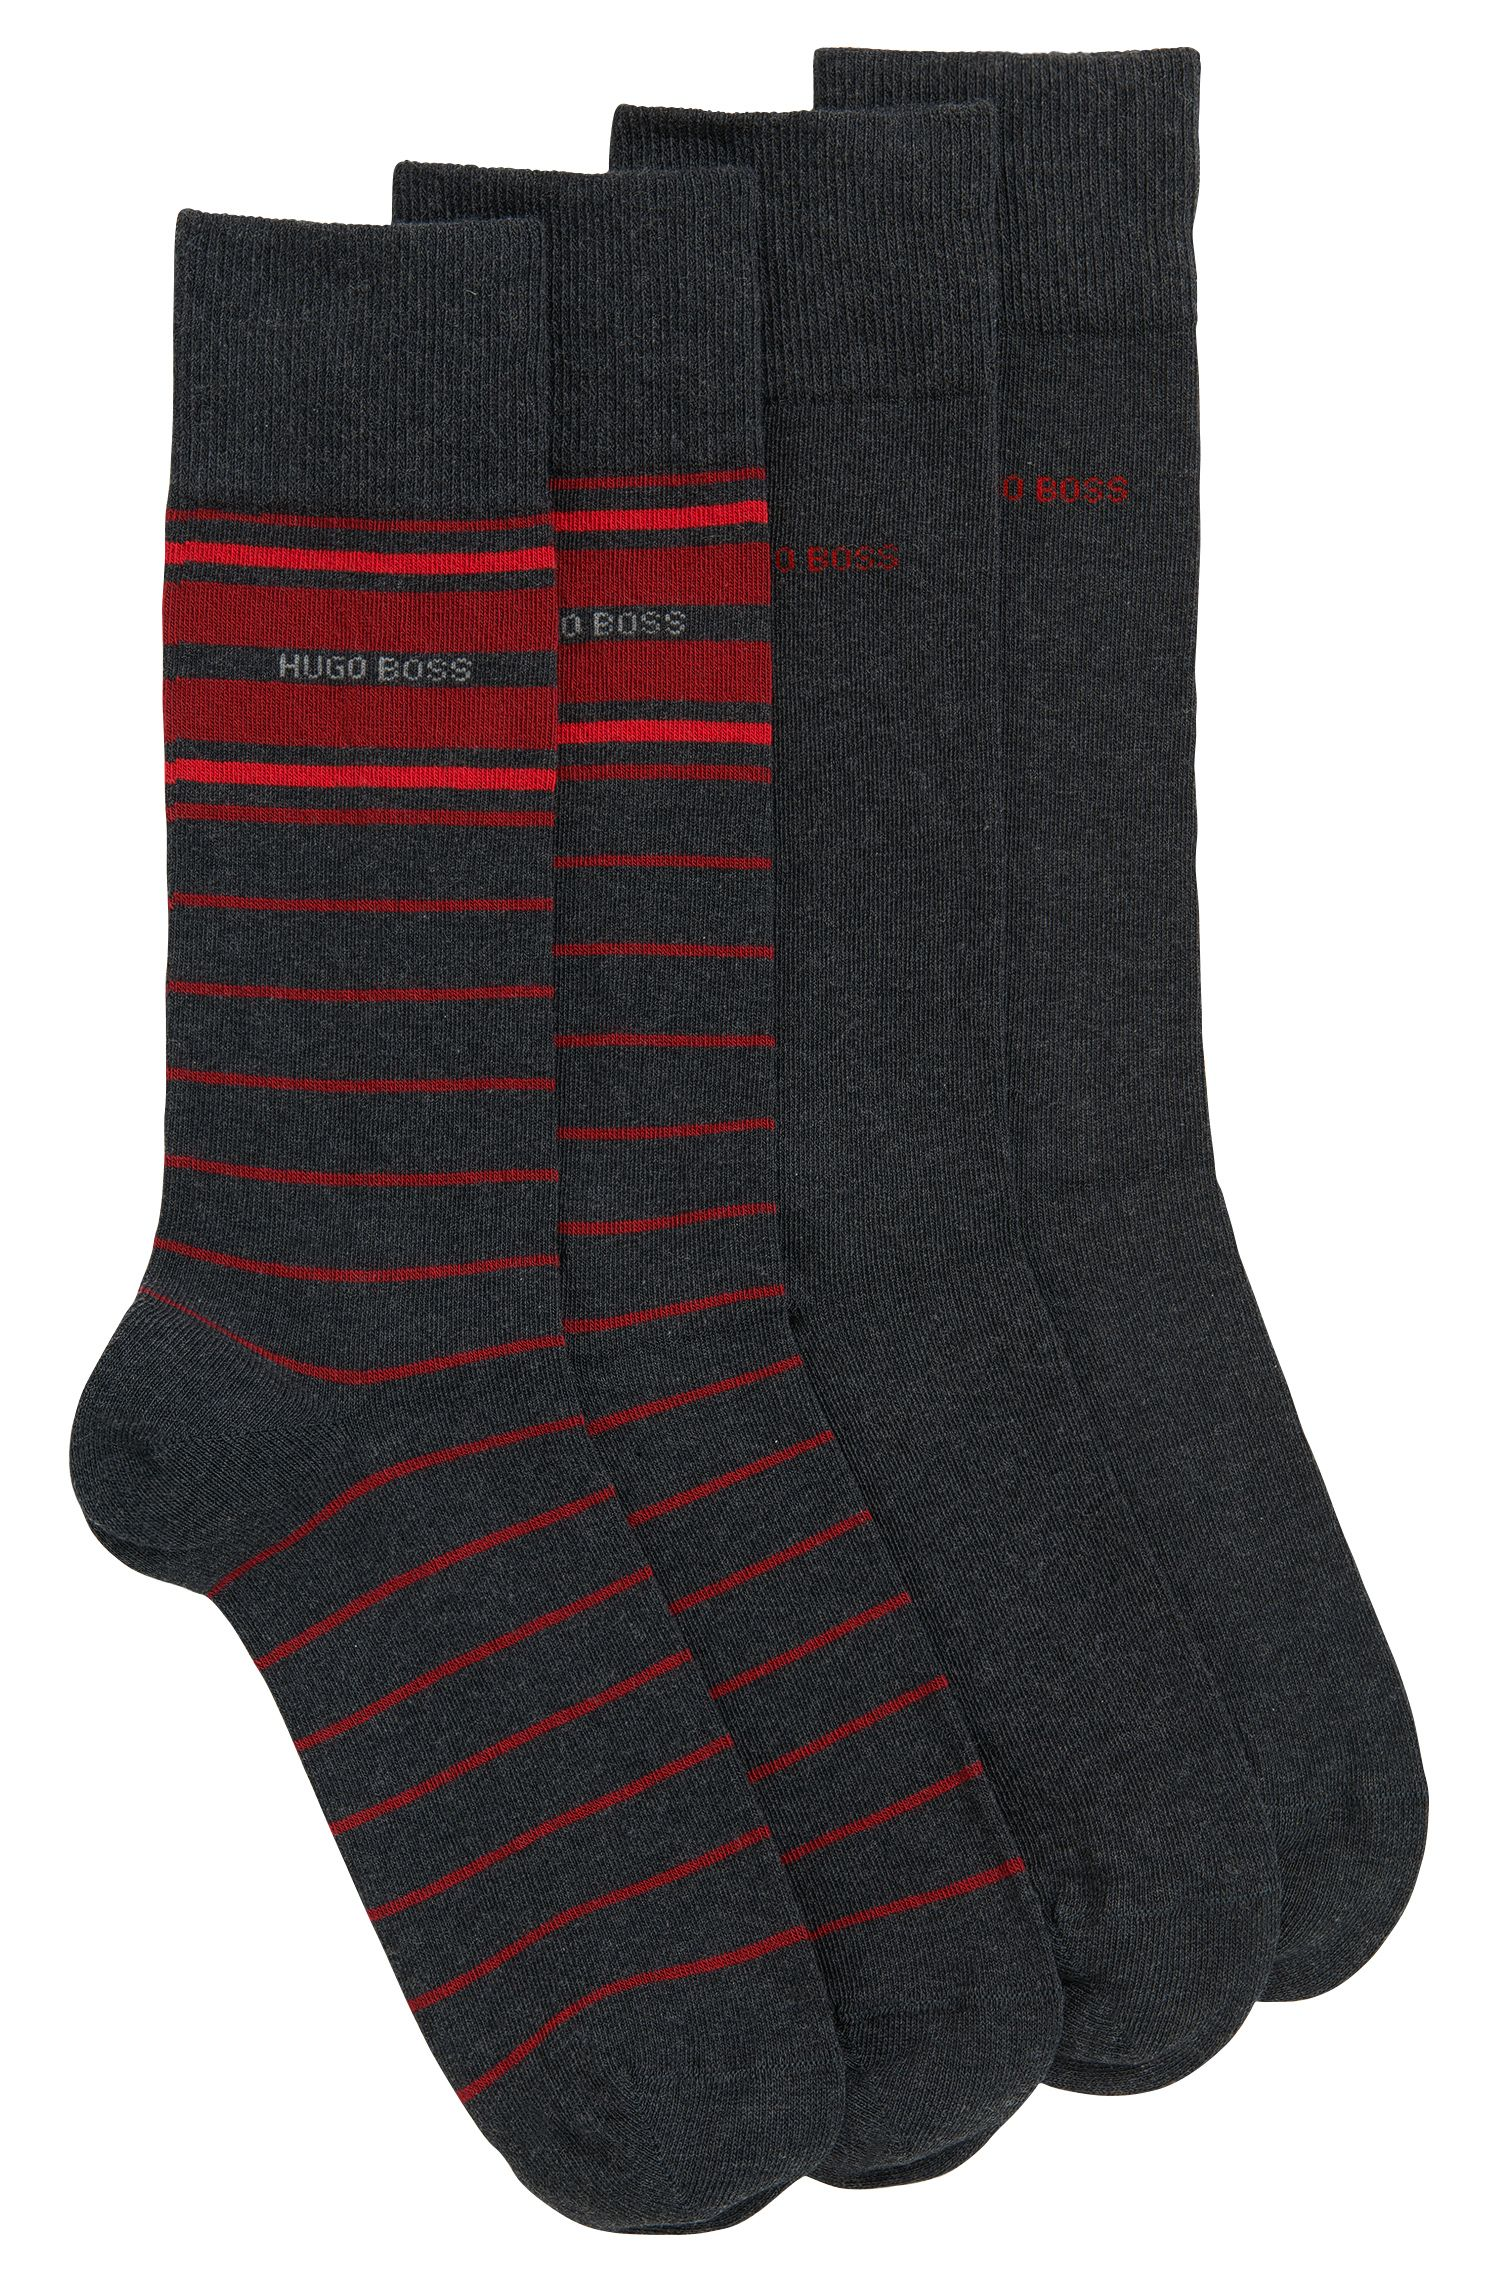 Two-pack of lightweight regular-length socks in a stretch cotton blend